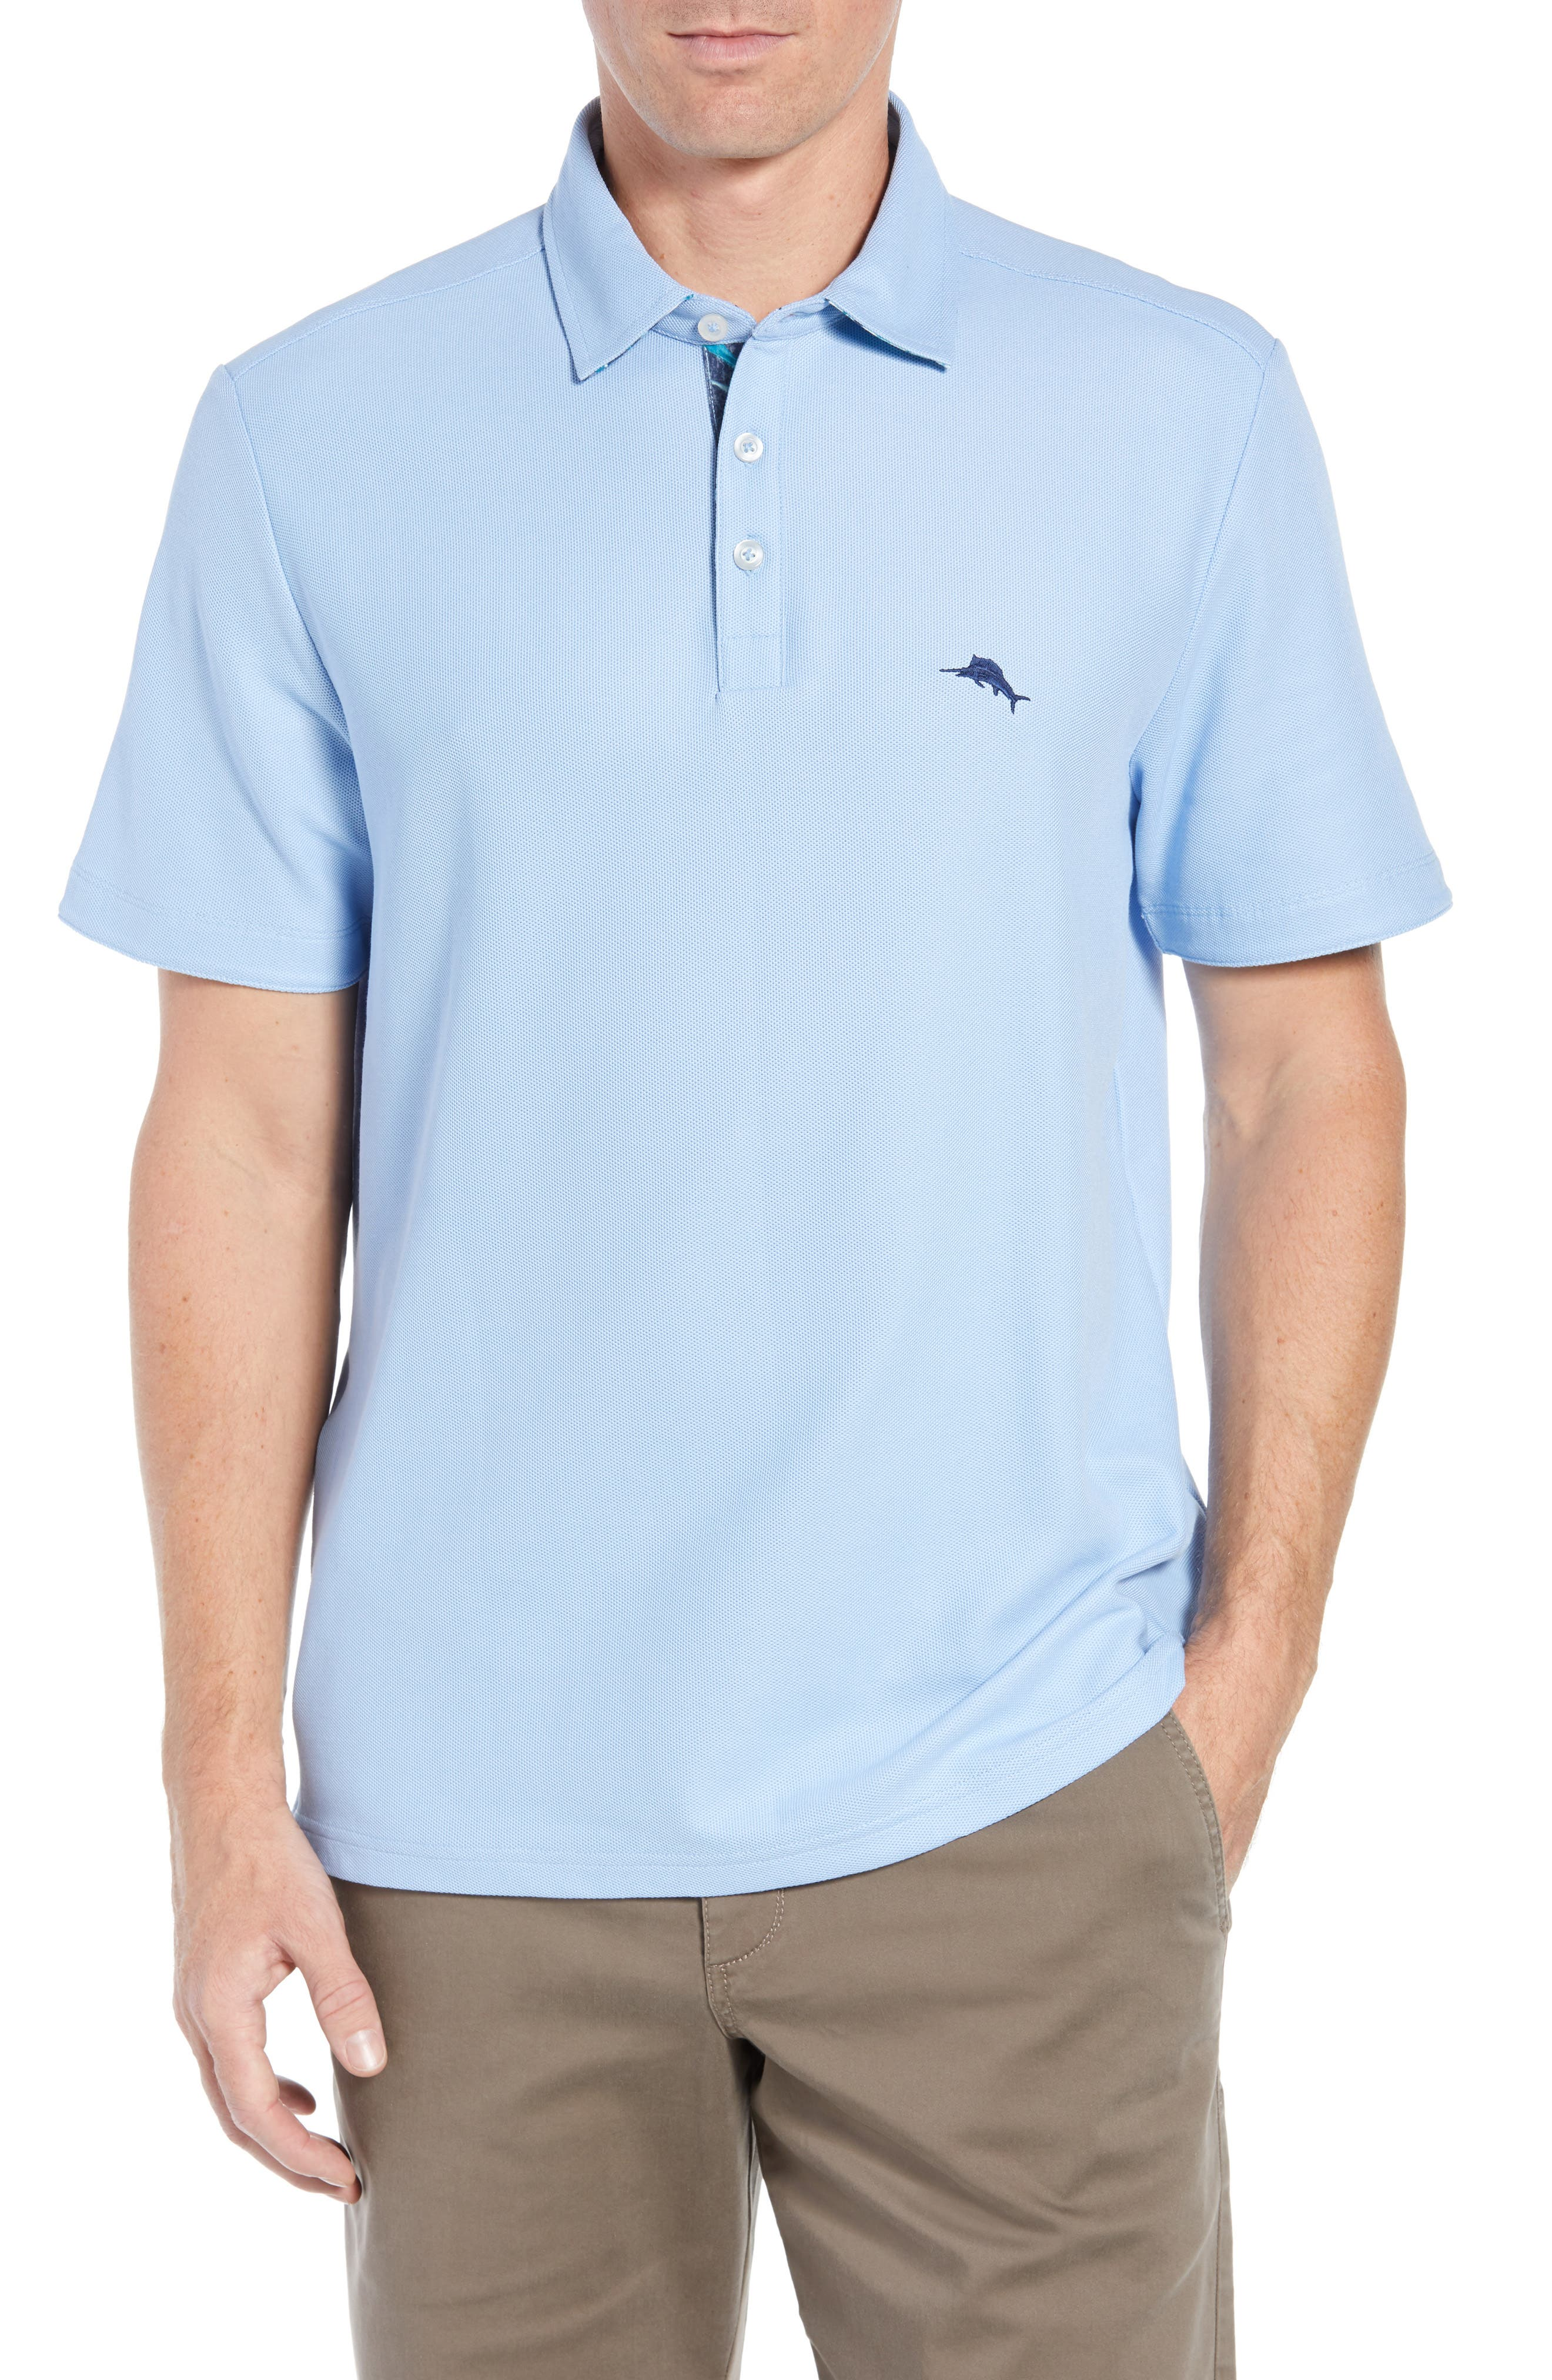 Five O'Clock Polo Shirt,                             Main thumbnail 1, color,                             400